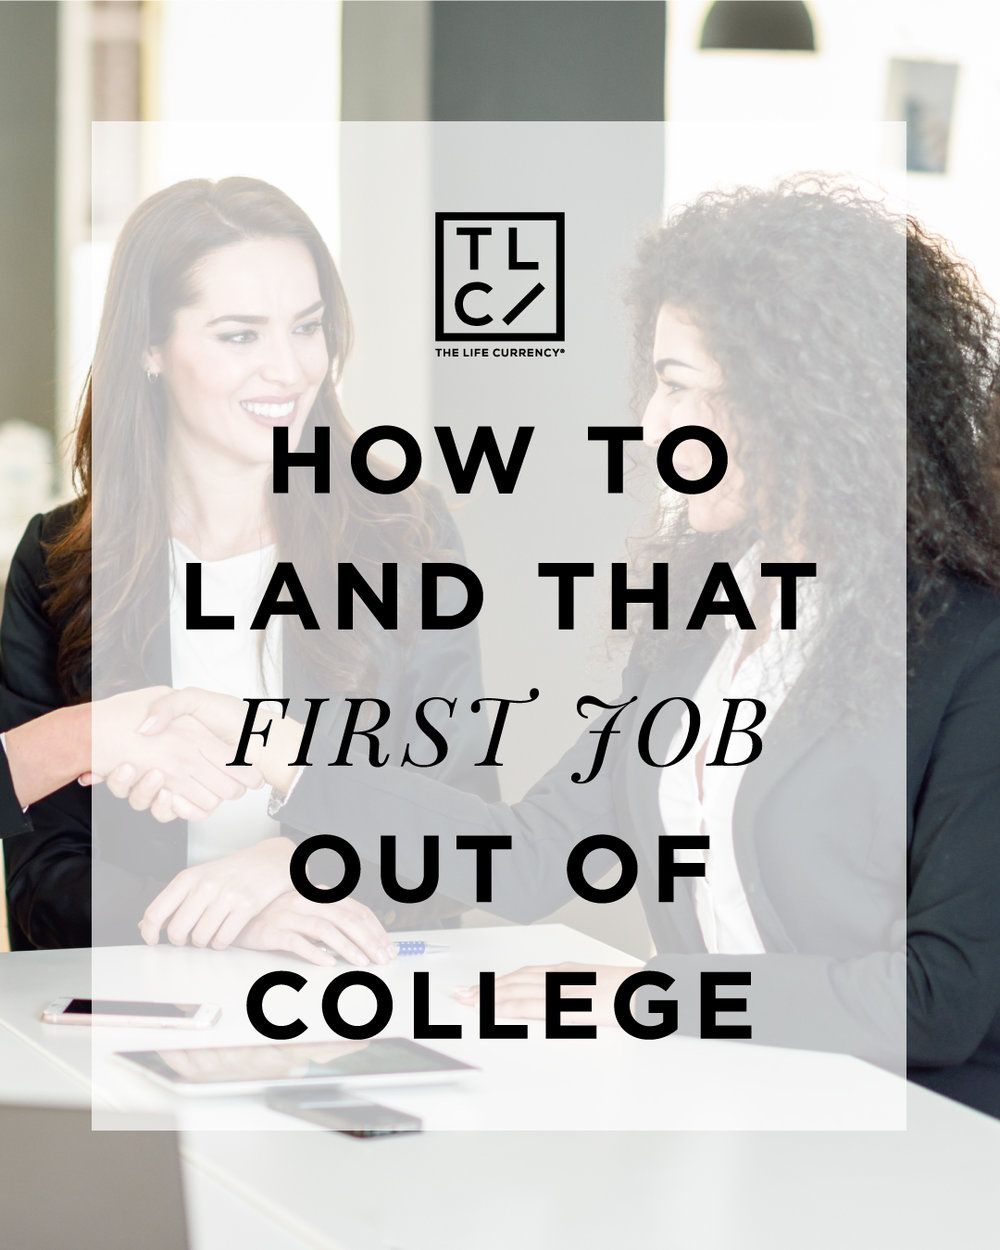 How To Land That First Job Out of College